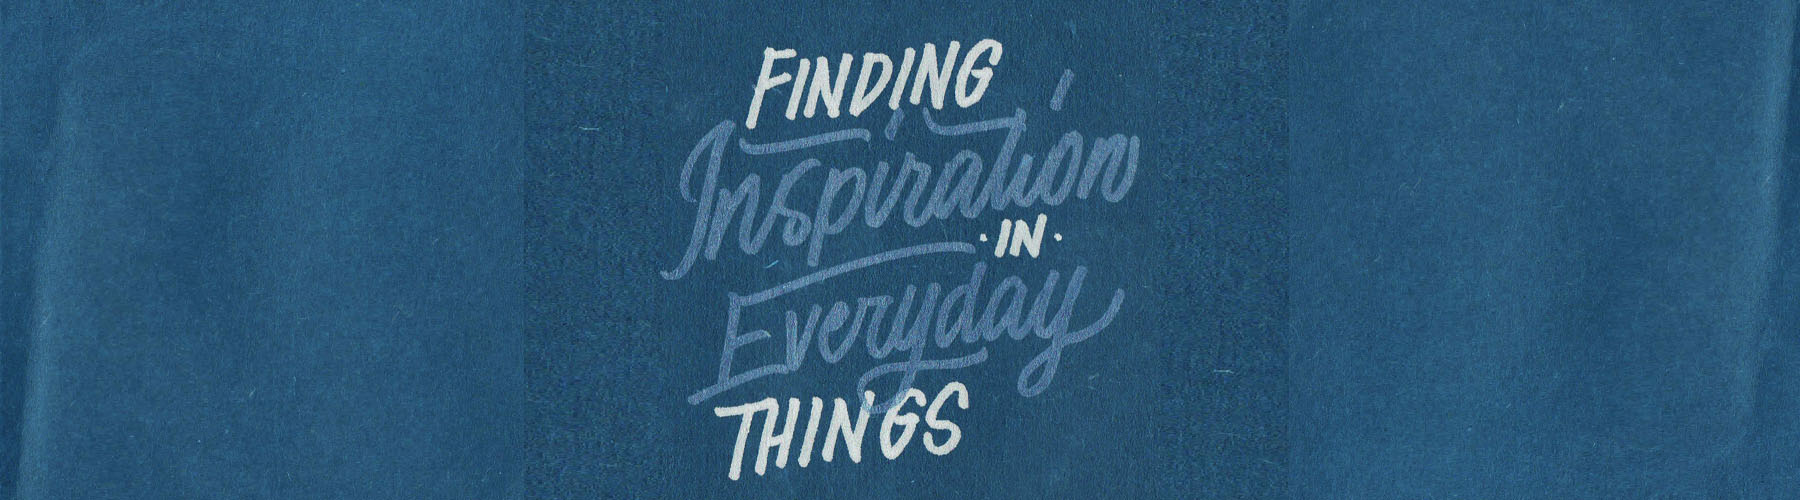 Finding-Inspiration-in-Everyday-ThingsArtboard-1.jpg